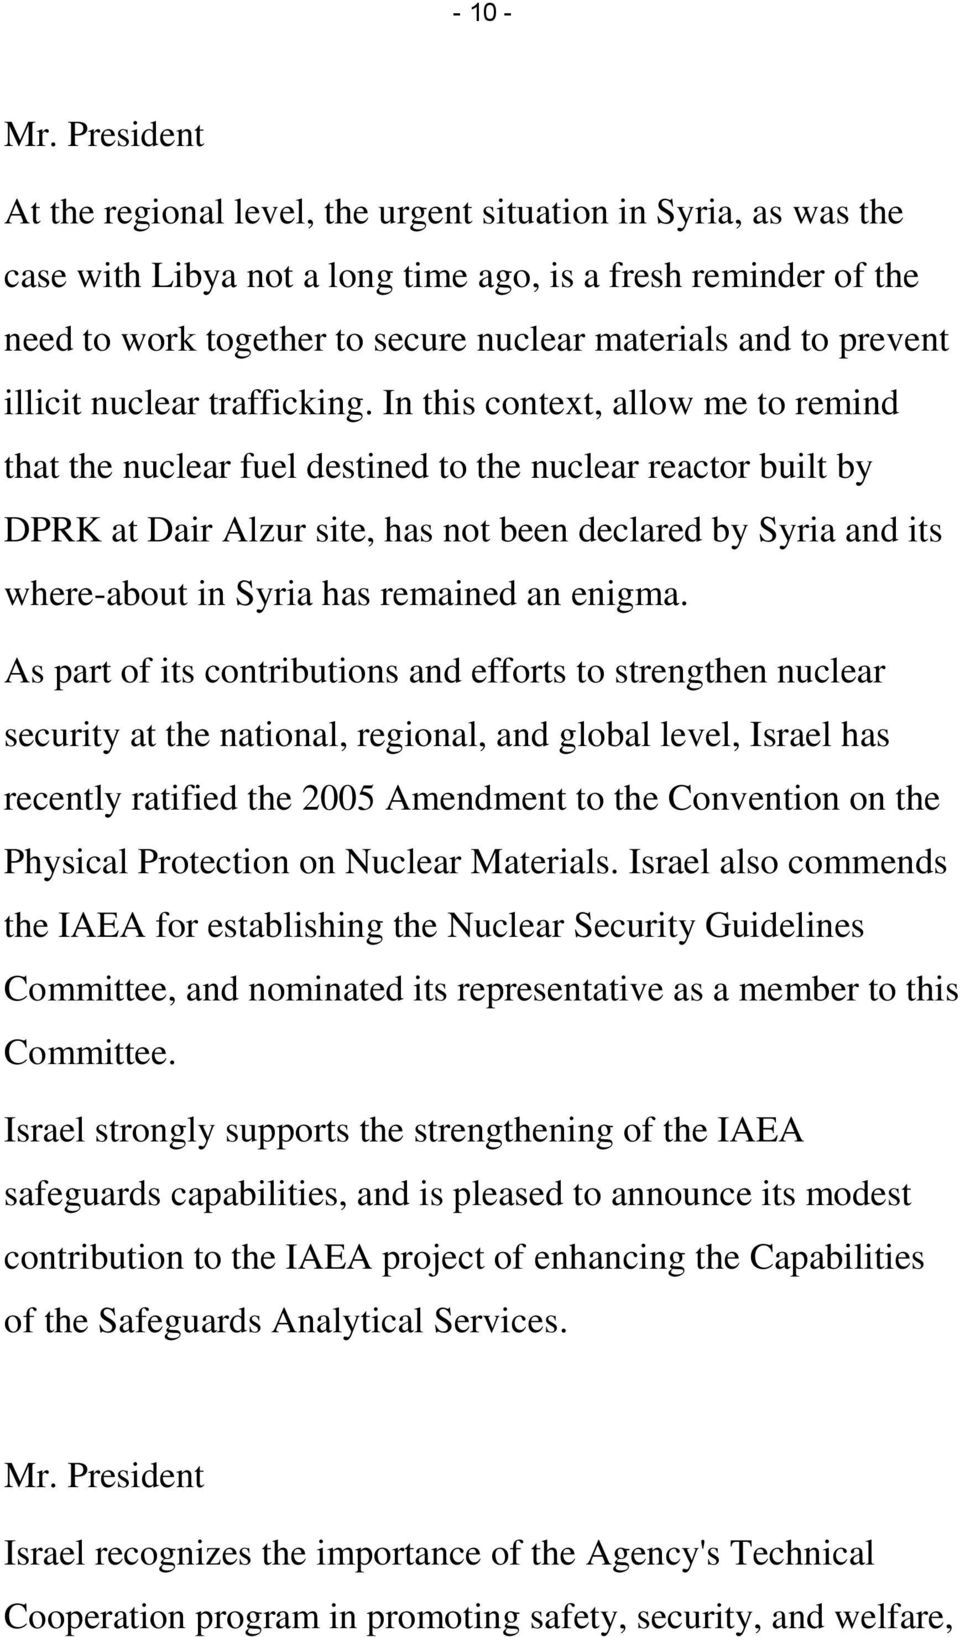 In this context, allow me to remind that the nuclear fuel destined to the nuclear reactor built by DPRK at Dair Alzur site, has not been declared by Syria and its where-about in Syria has remained an